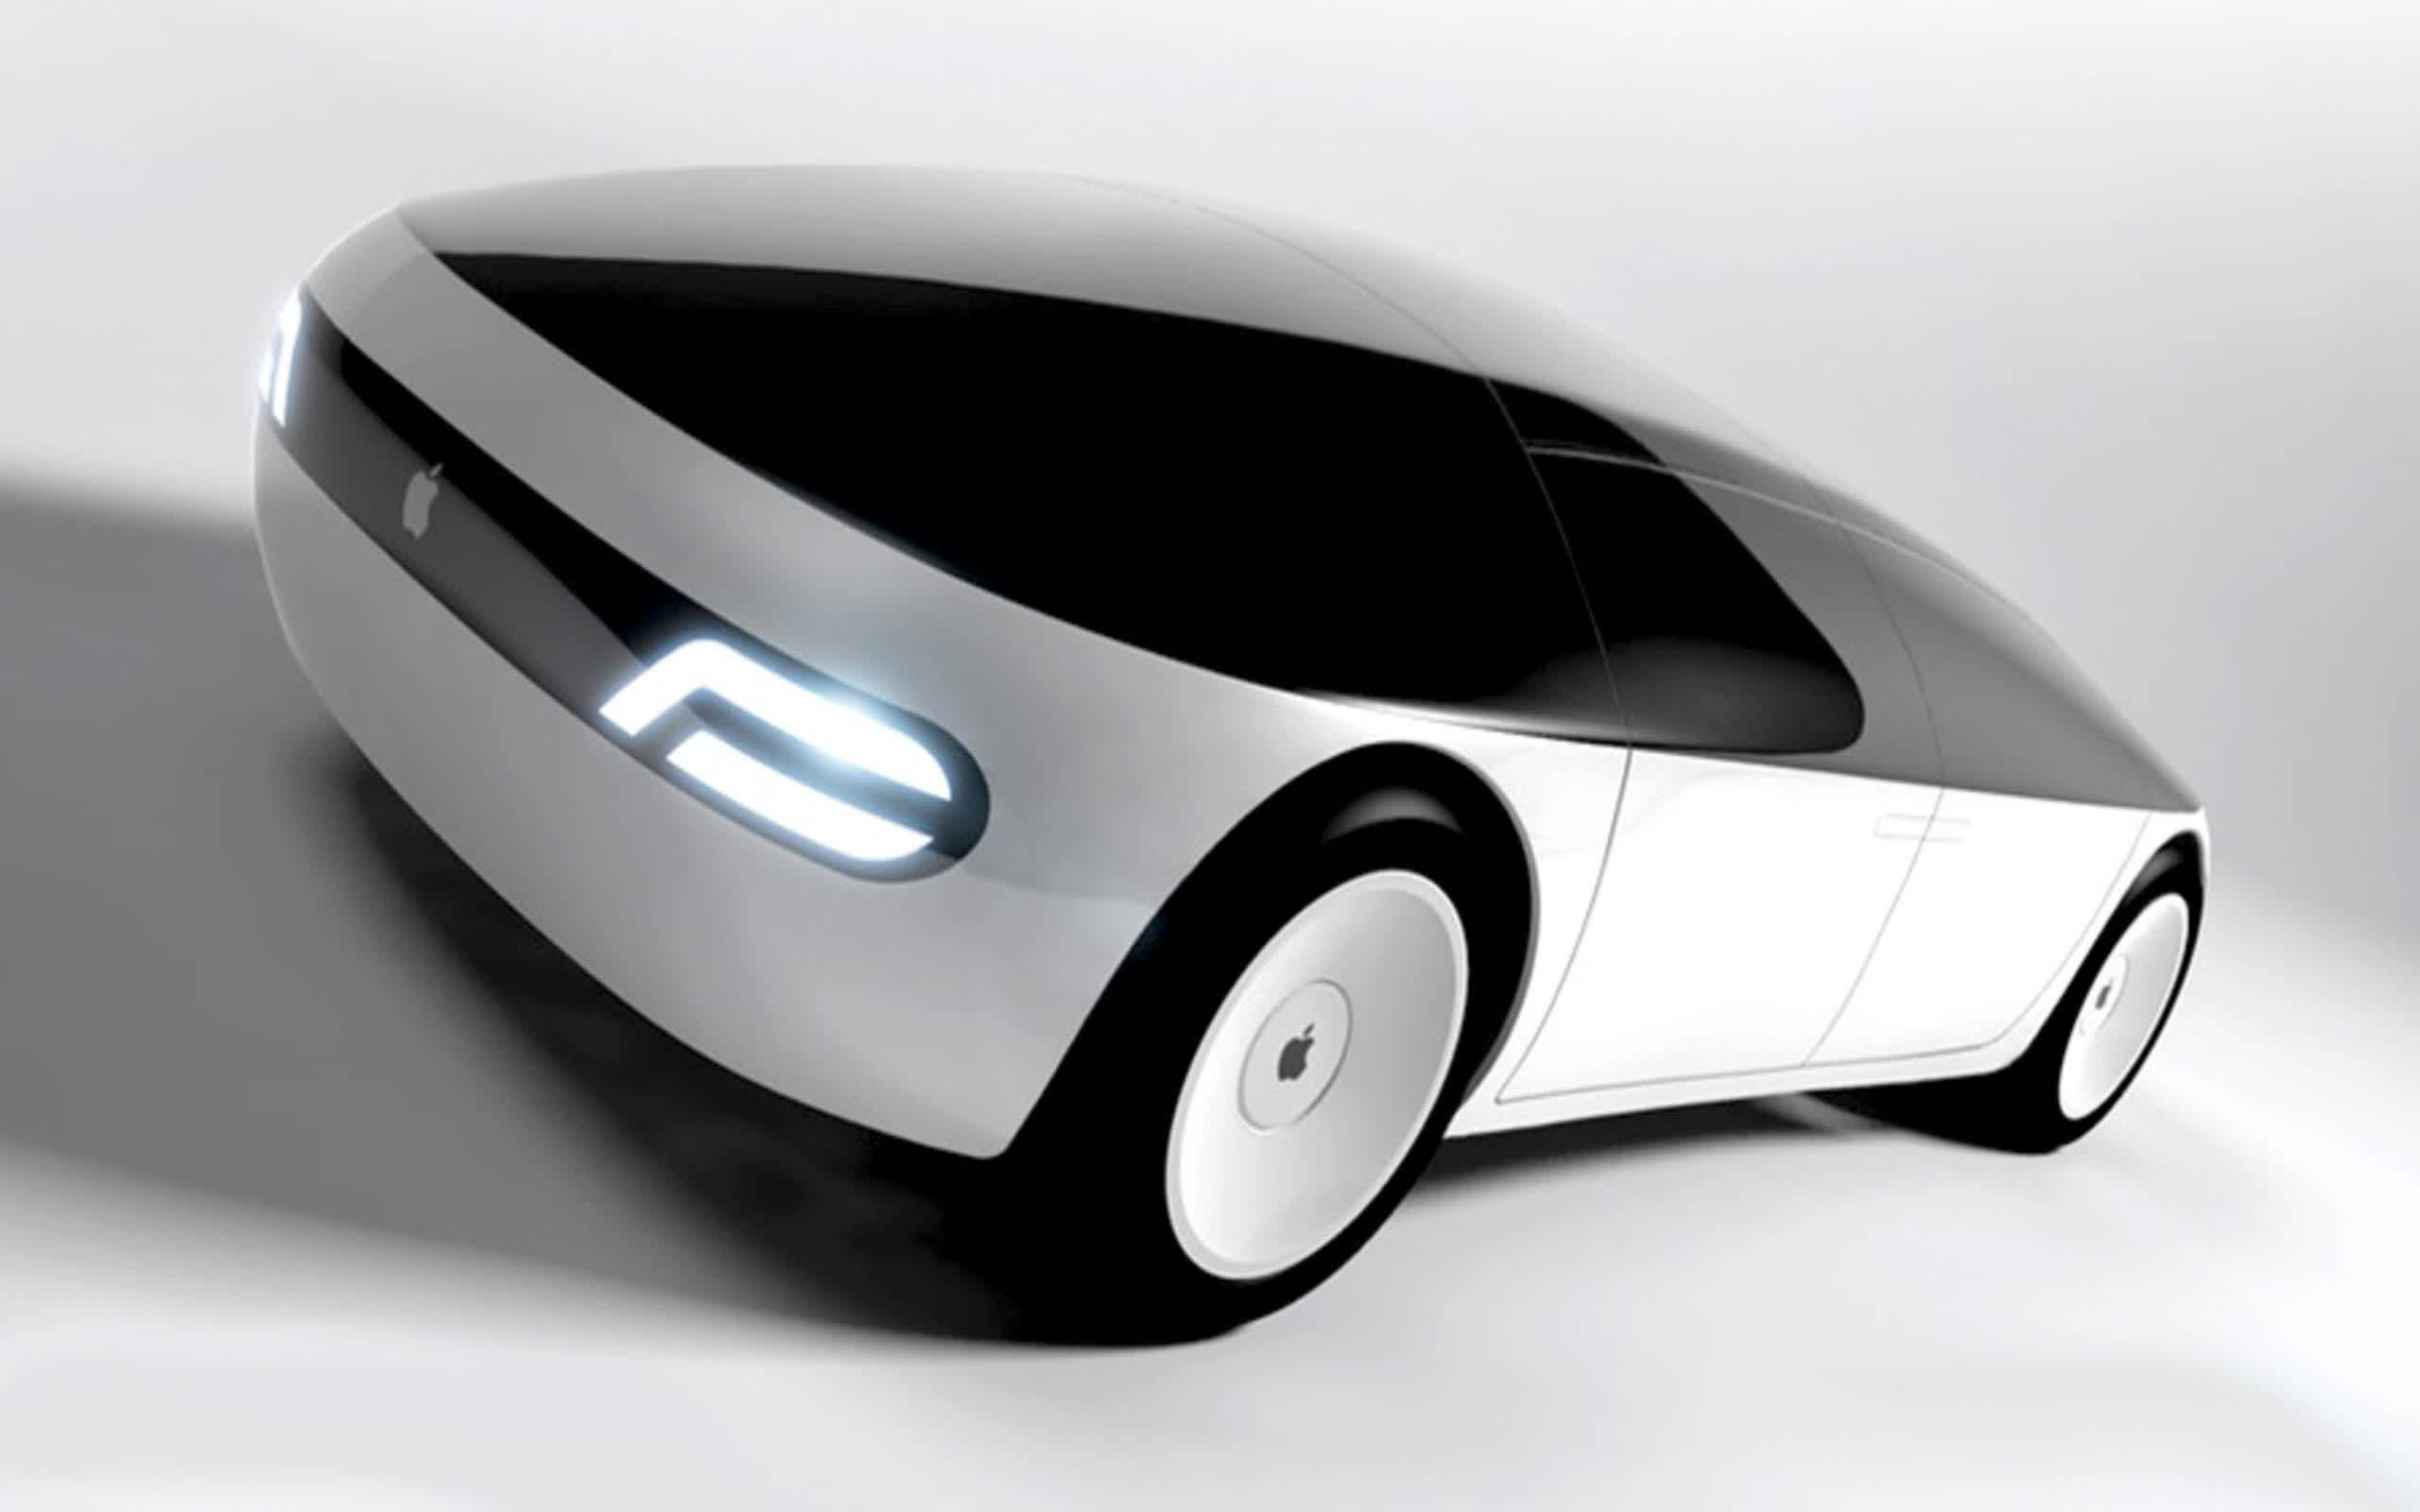 Apple recruits VP of technology Kevin Lynch to work on car project